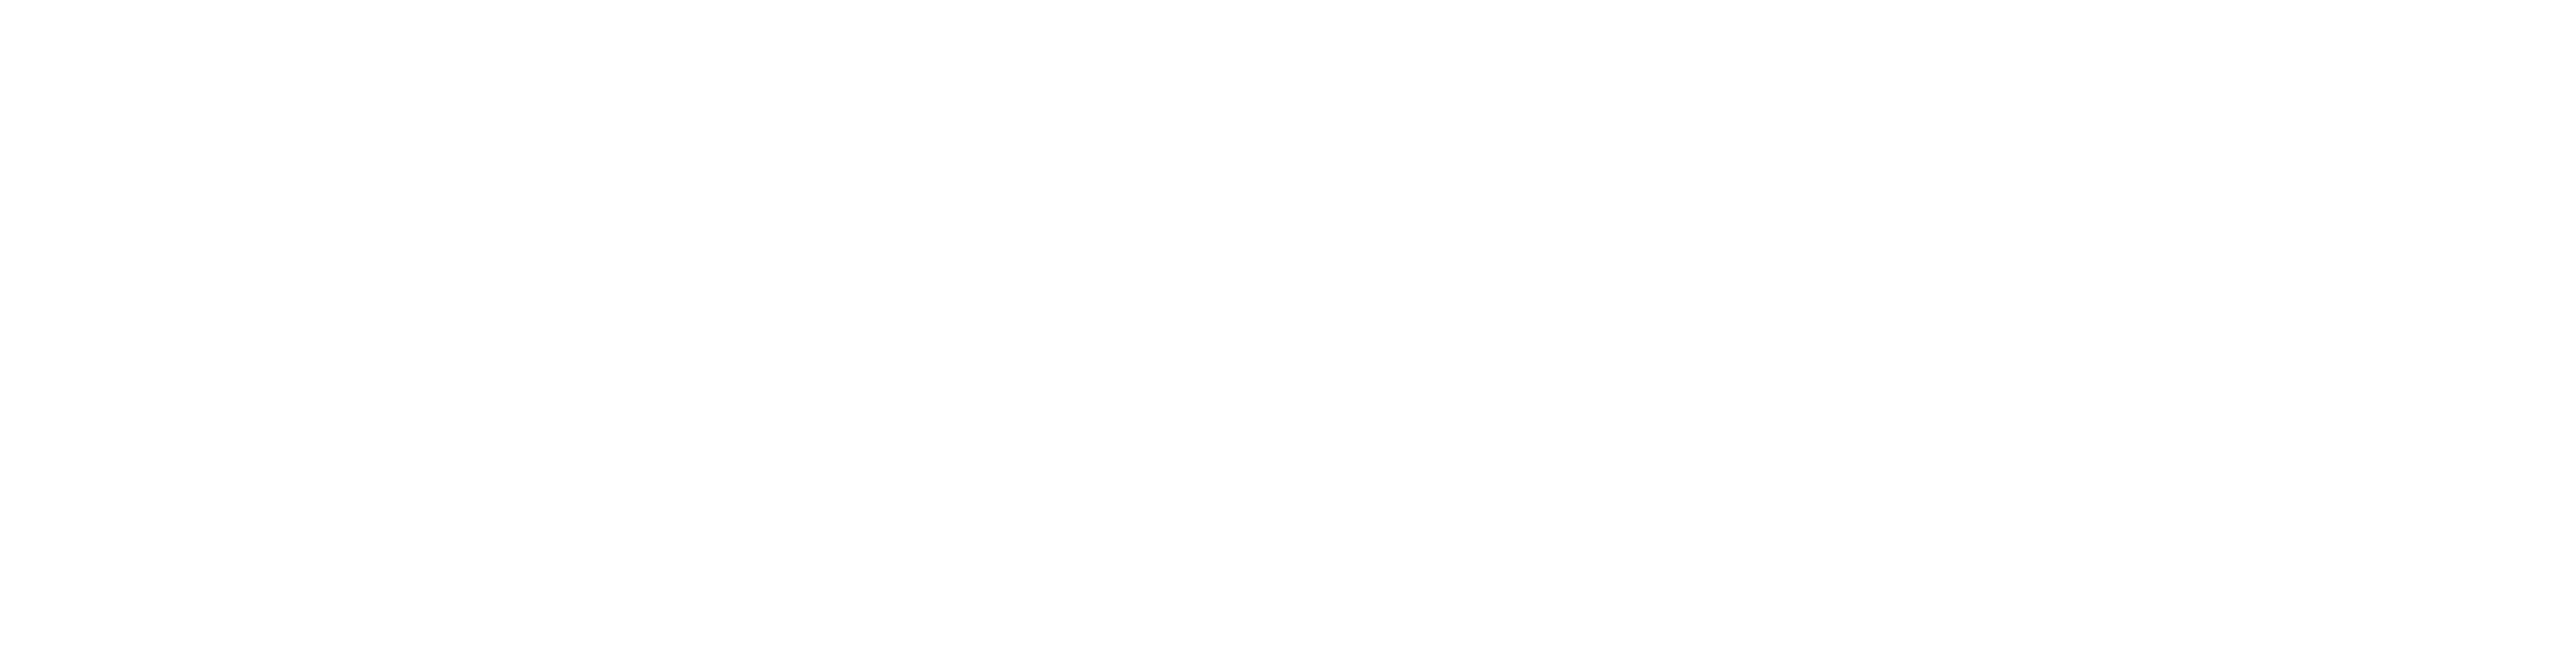 Chesaning Auto Recyclers